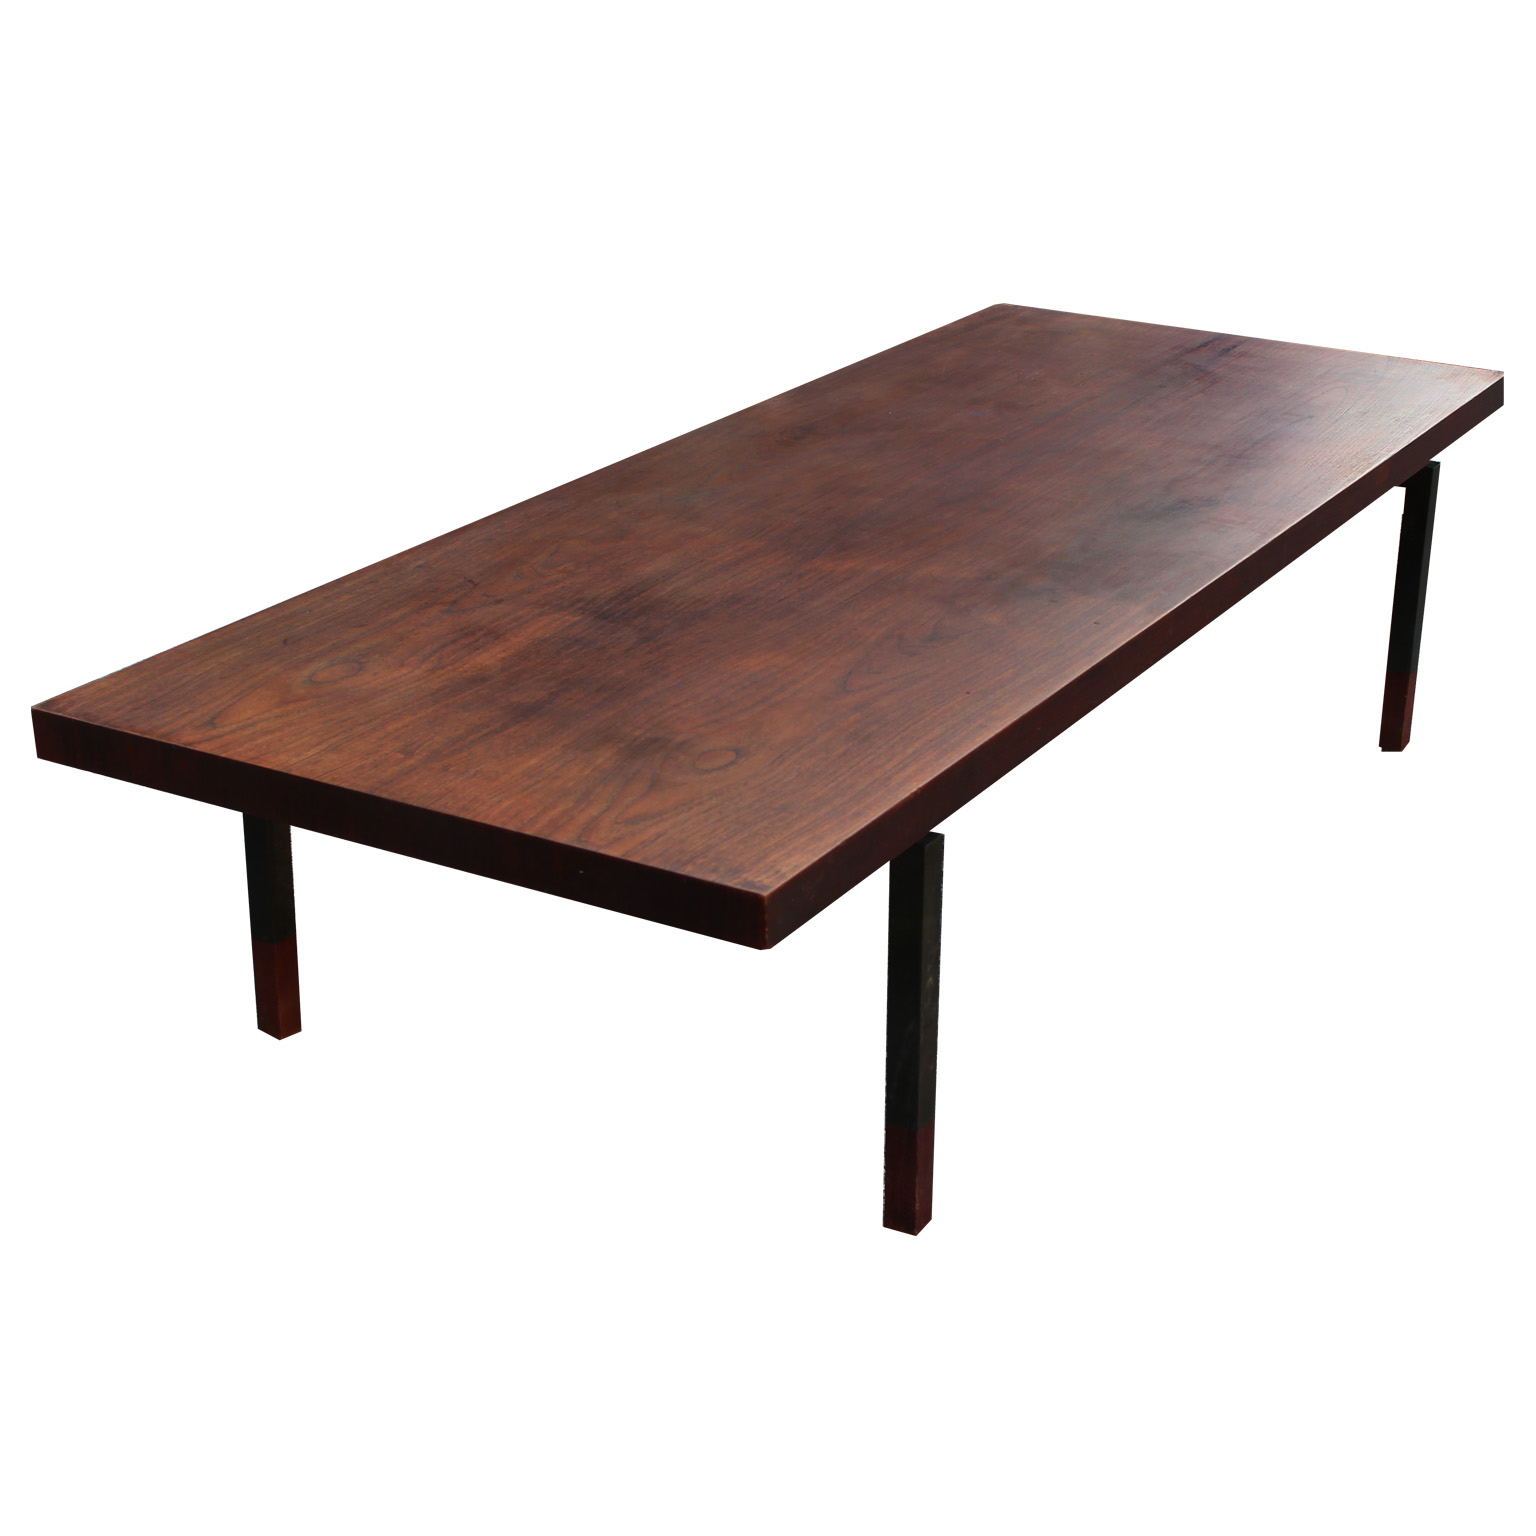 Johannes Aasbjerg Danish Teak Coffee Table : johnannes aasbjerg coffee table1 from www.reevesantiqueshouston.com size 1536 x 1536 jpeg 198kB